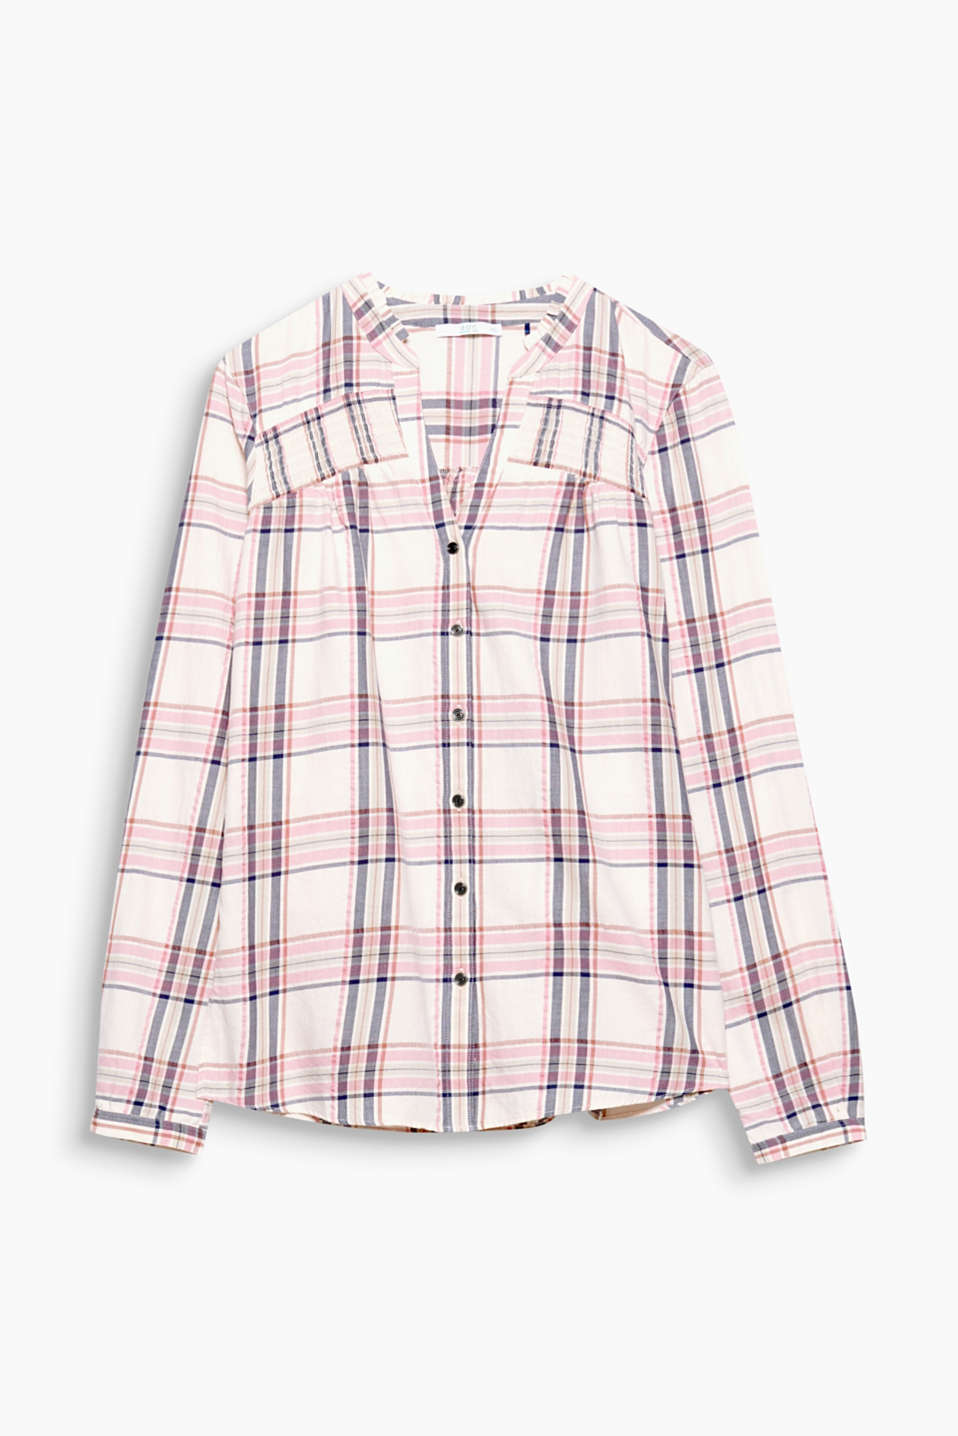 A frilly collar and smocked details give this check blouse made of sustainable organic cotton a feminine twist.